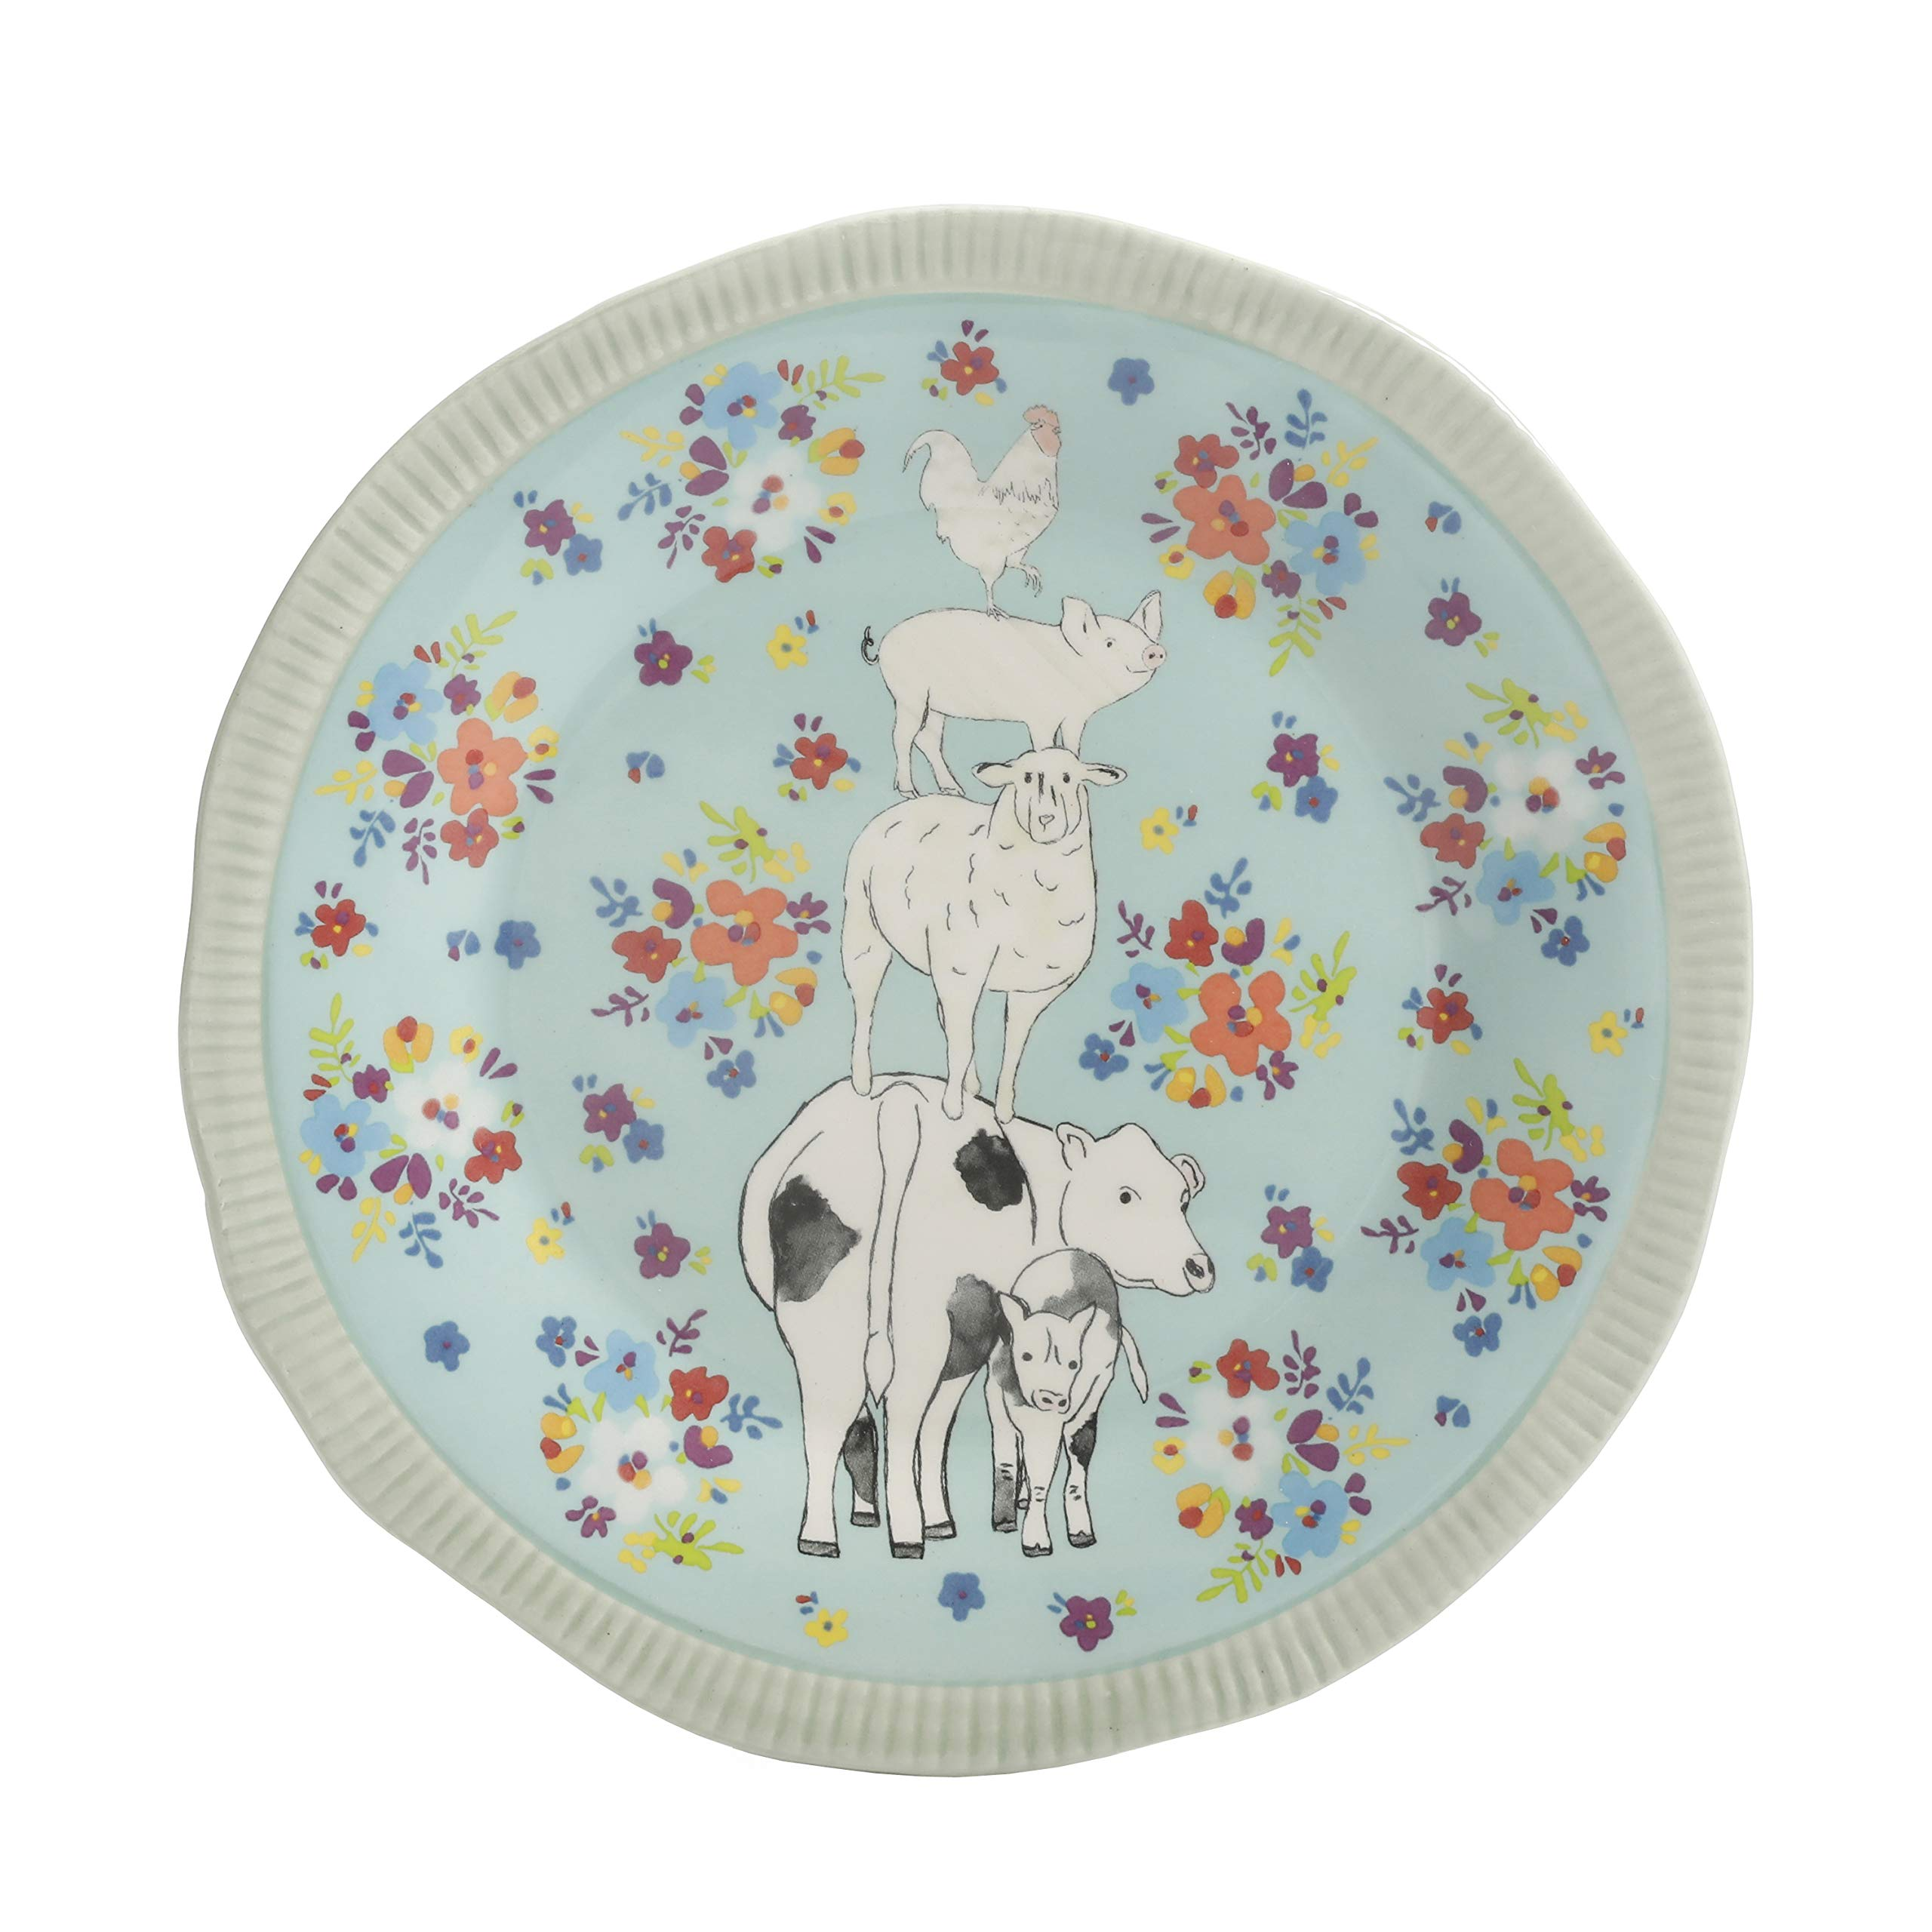 Urban Market by Gibson 99869.12RM Life on the Farm 12pc dinnerware set, Blue/White by Urban Market by Gibson (Image #4)